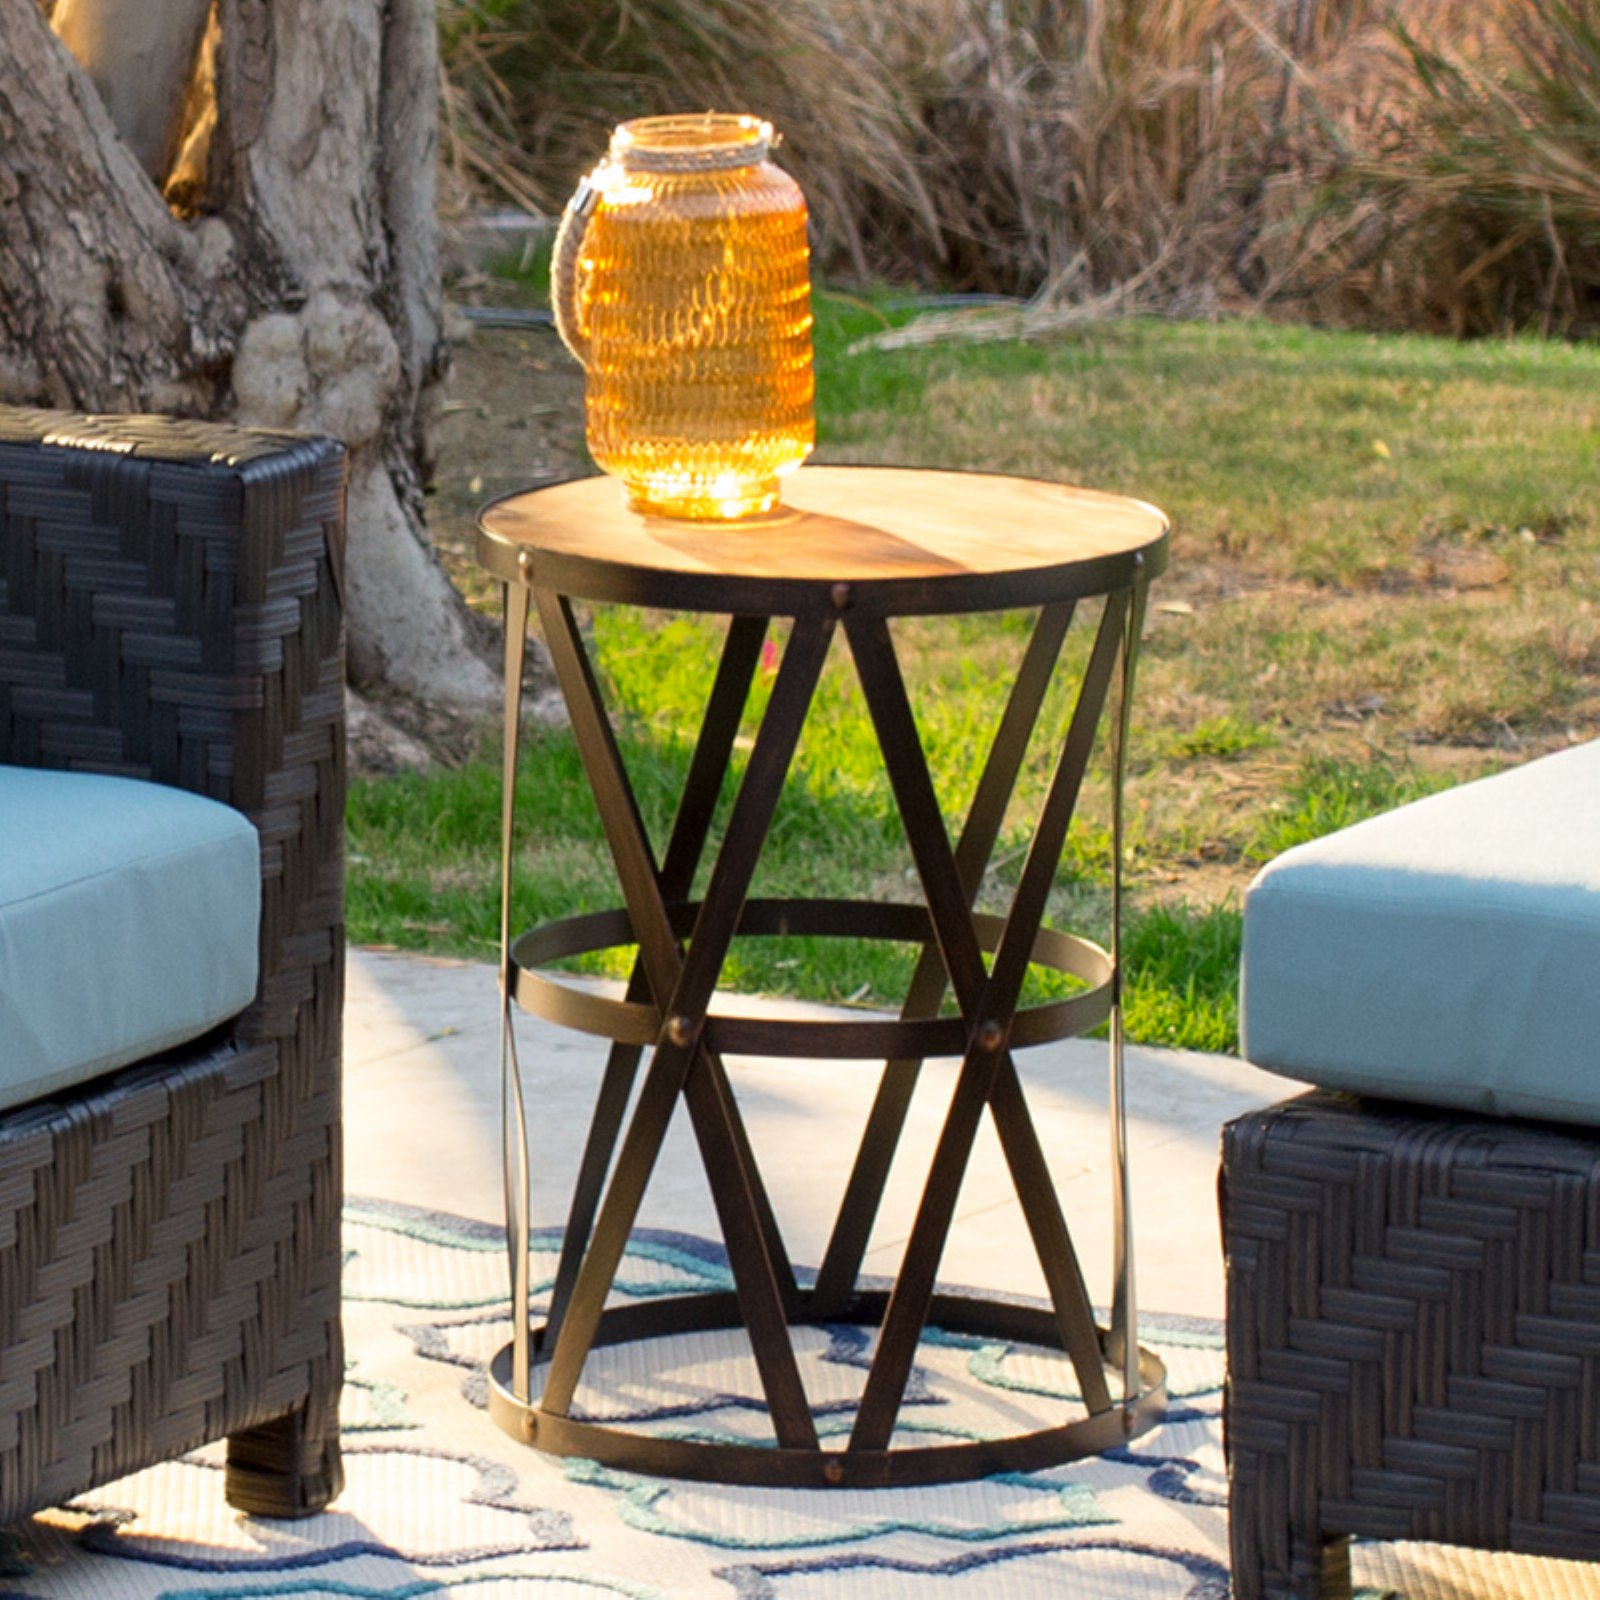 Coral Coast Sarah 17-in. Round Metal Patio Side Table with Wood Top by